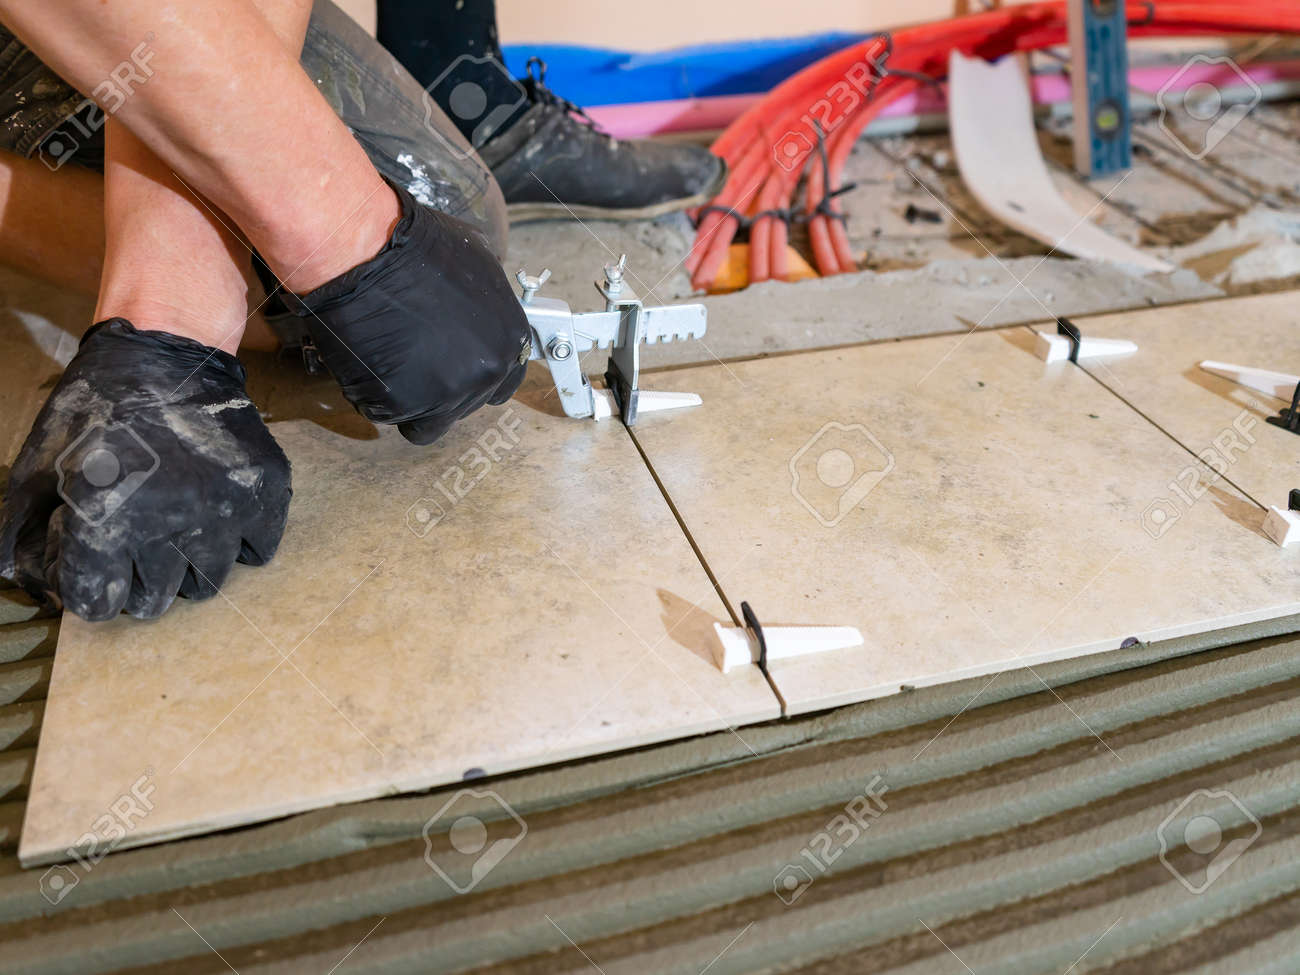 Workers are using plastic clamps and wedges to leveling the ceramic tile on the floor. Tile leveling system. - 171996055